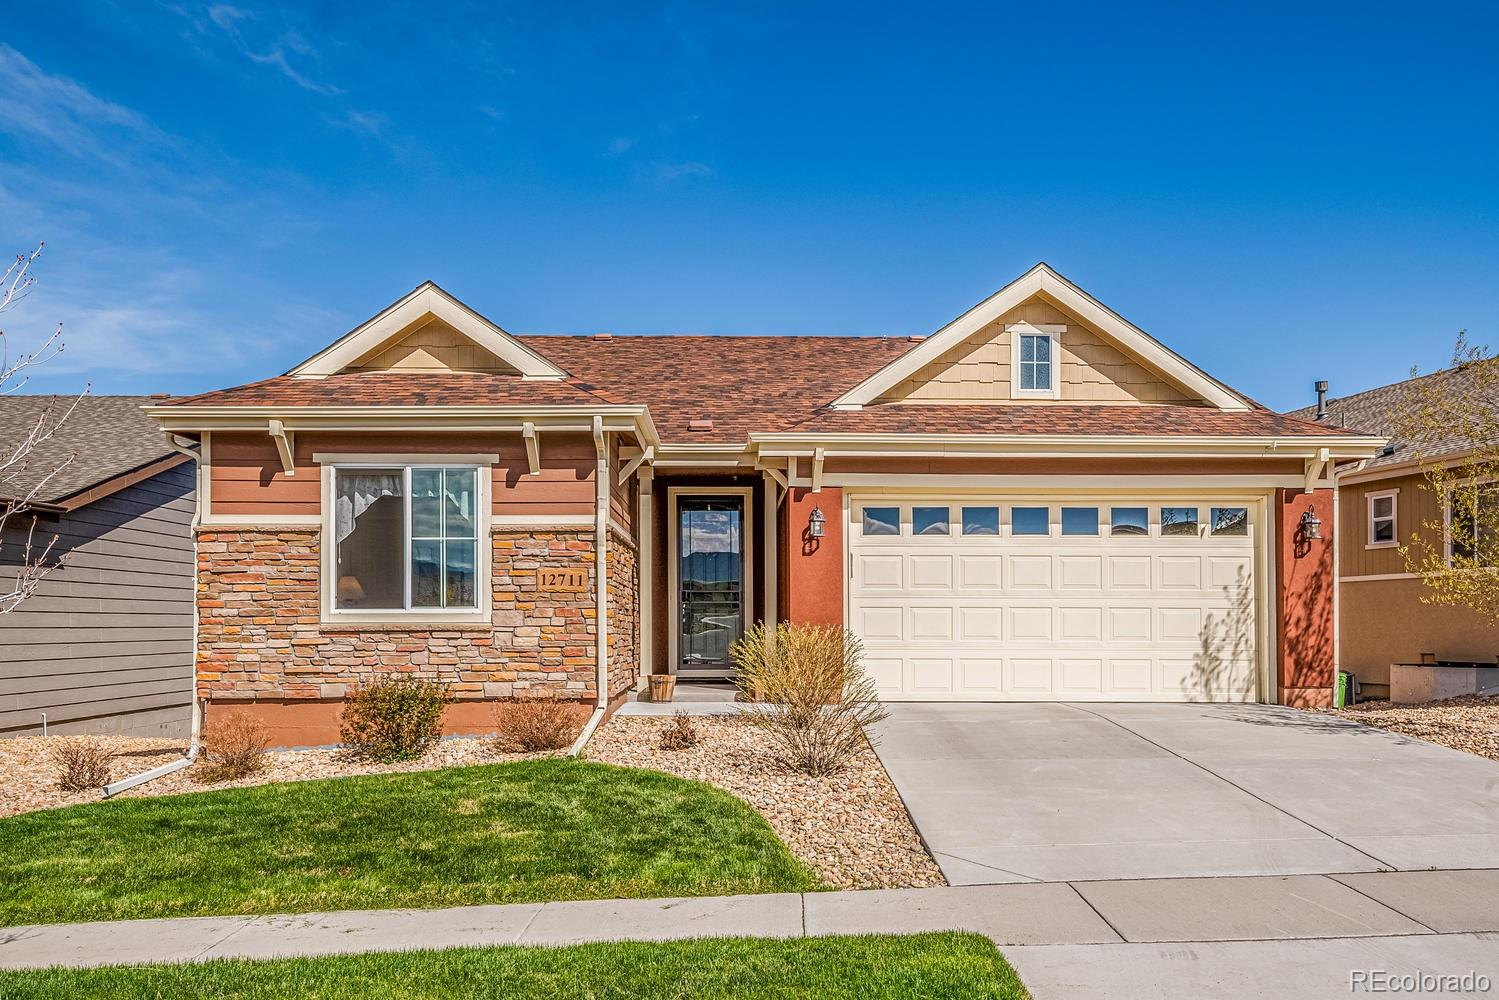 12711 Meadowlark Lane, Broomfield, CO 80021 - Broomfield, CO real estate listing